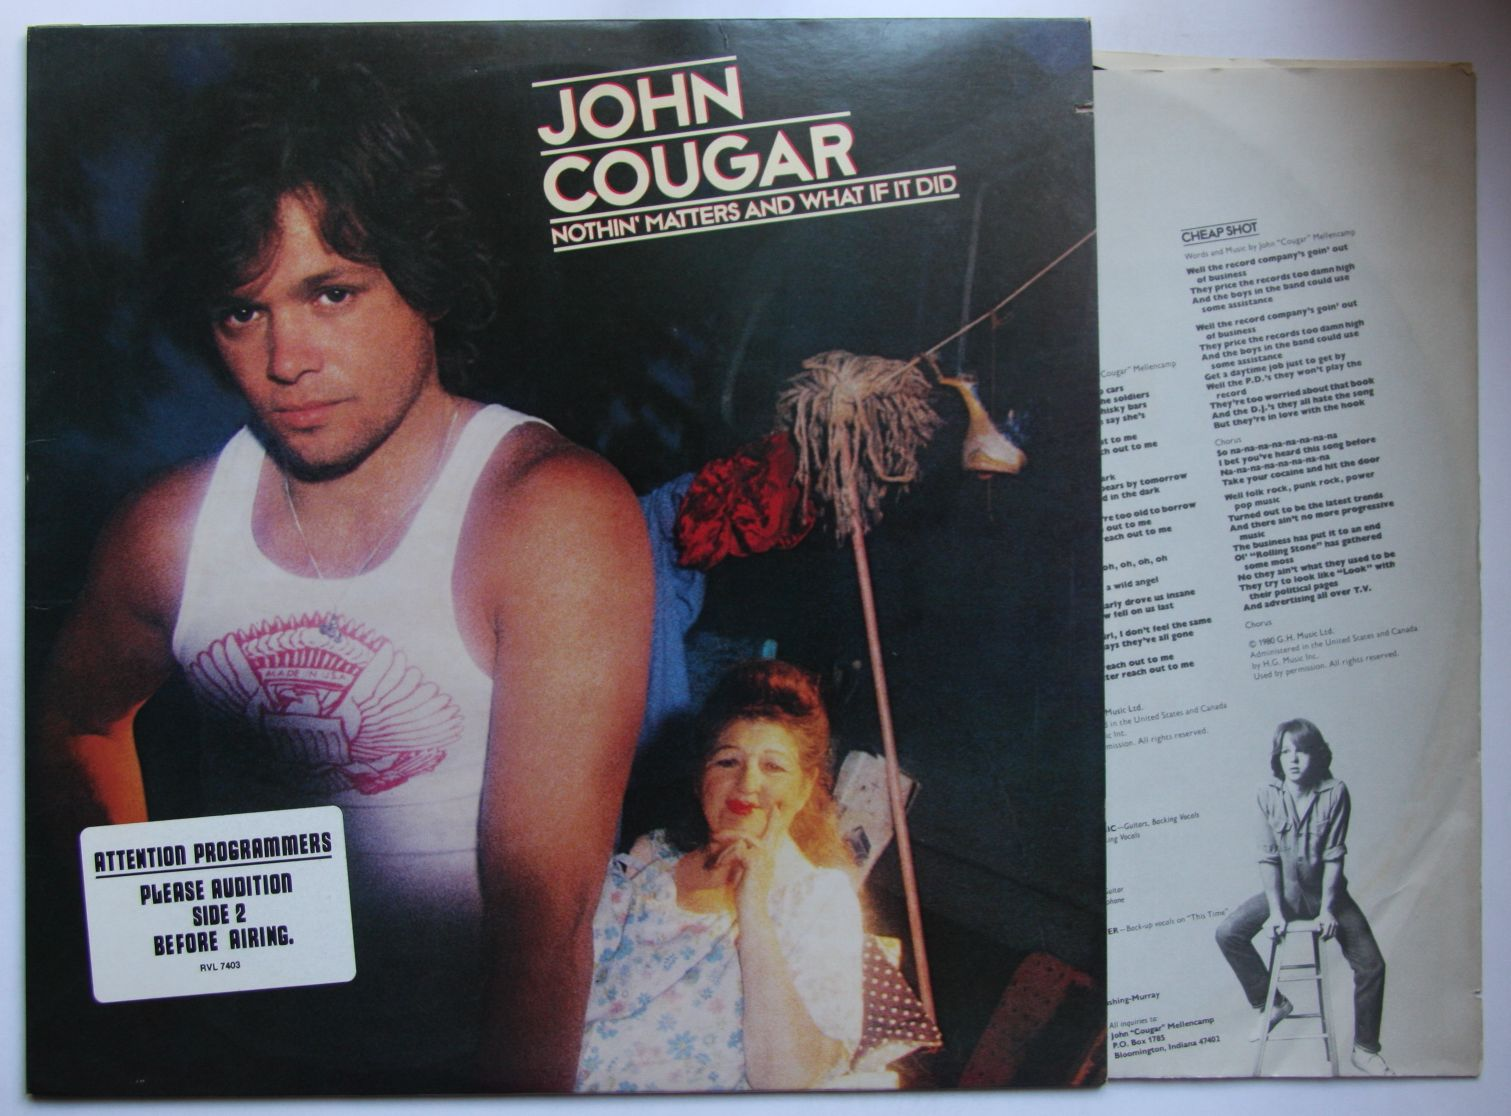 John Cougar - Nothing Matters And What If It Did